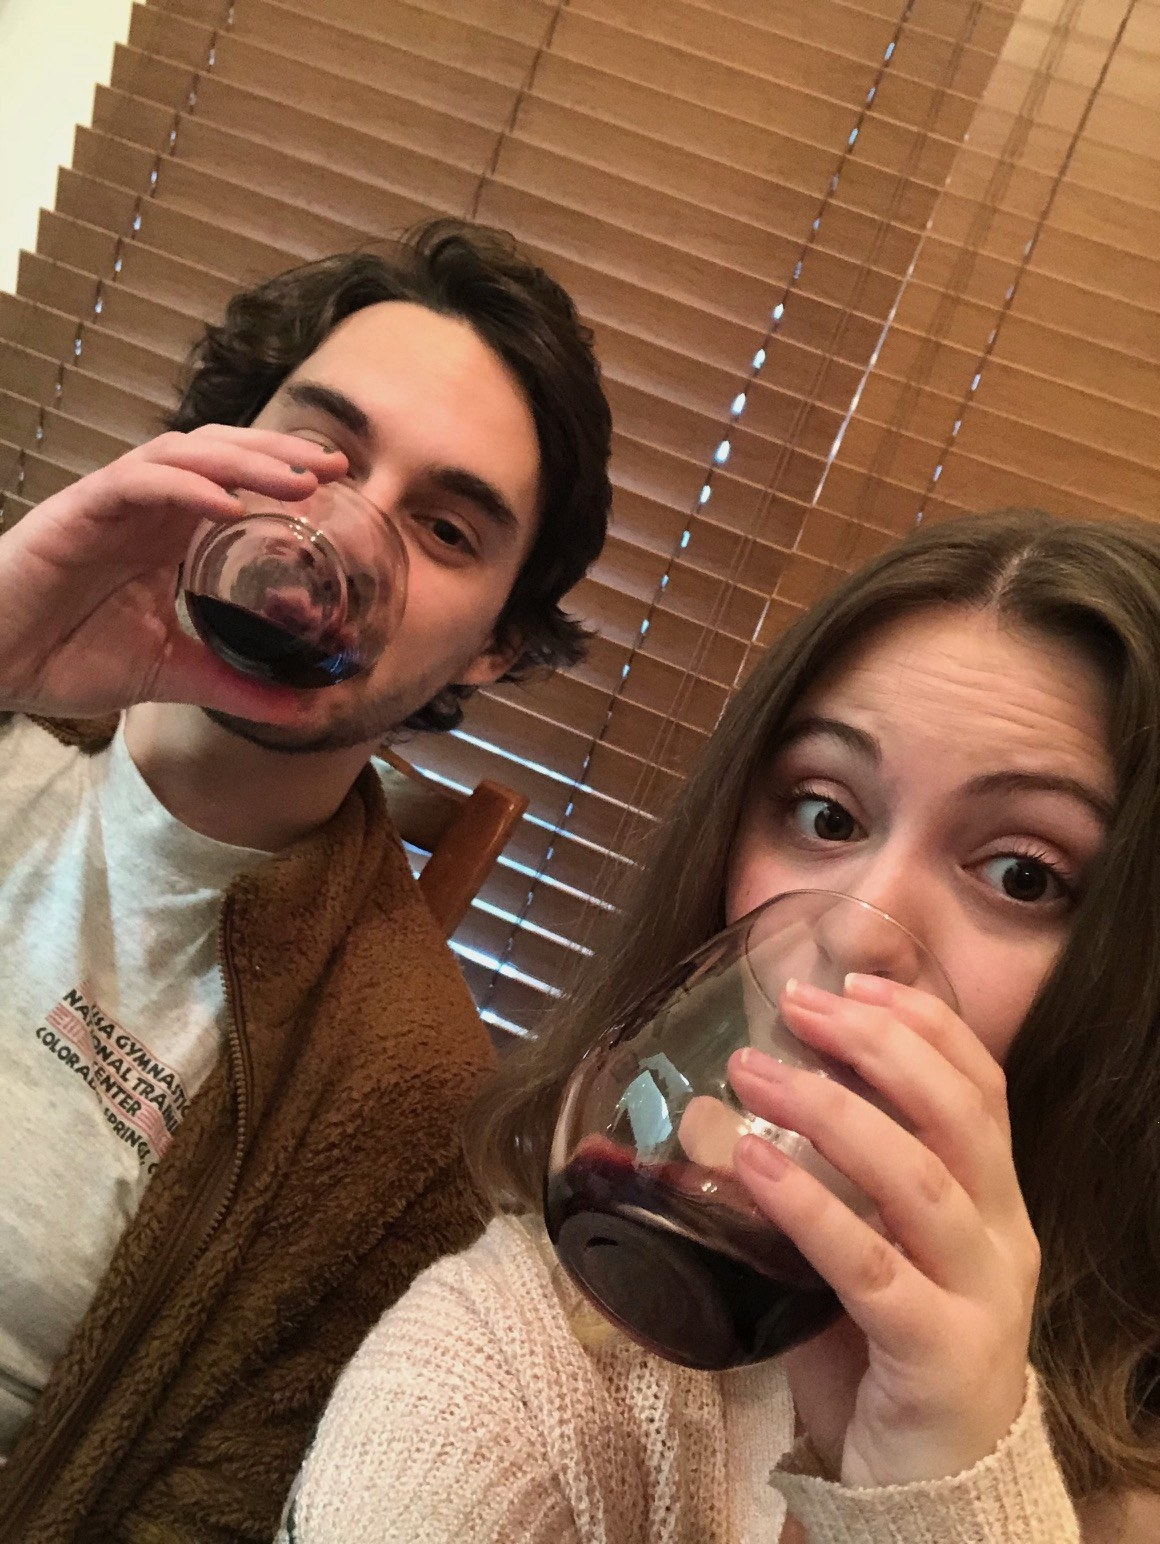 Young man and woman each drinking glasses of red wine